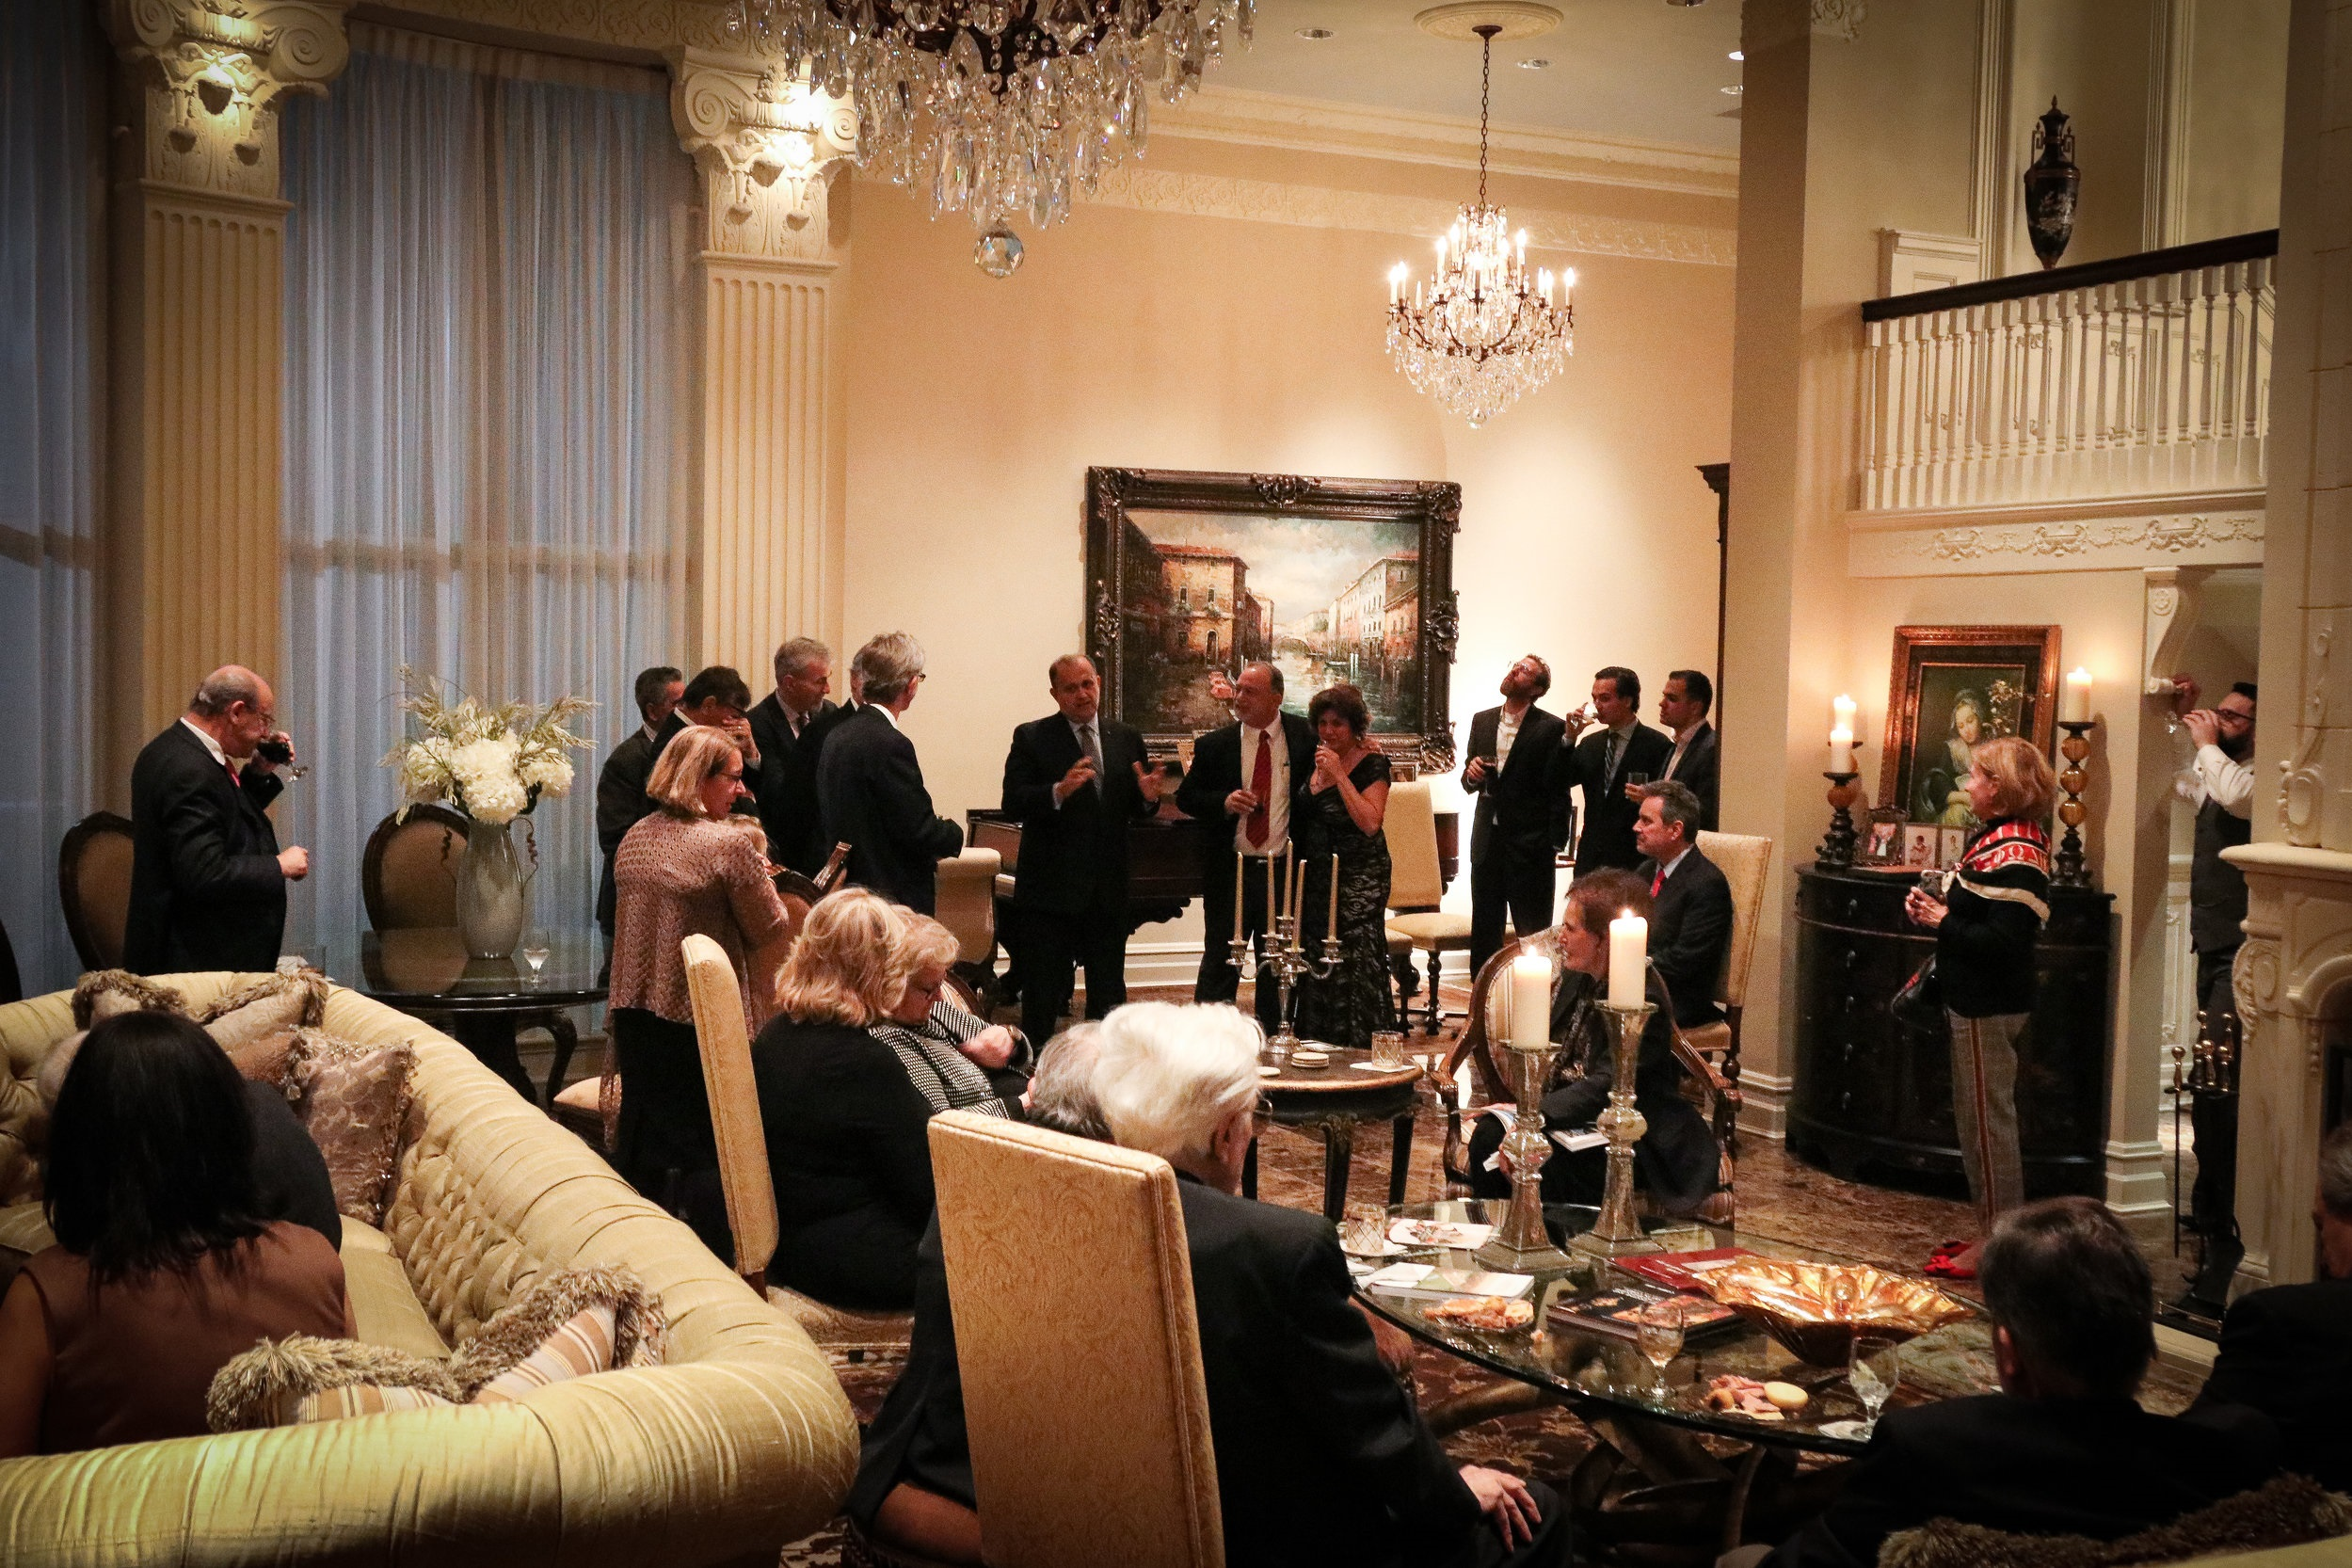 Paun and Magdaline Peters host a reception for AHI at their residence in Forth Worth, Texas.